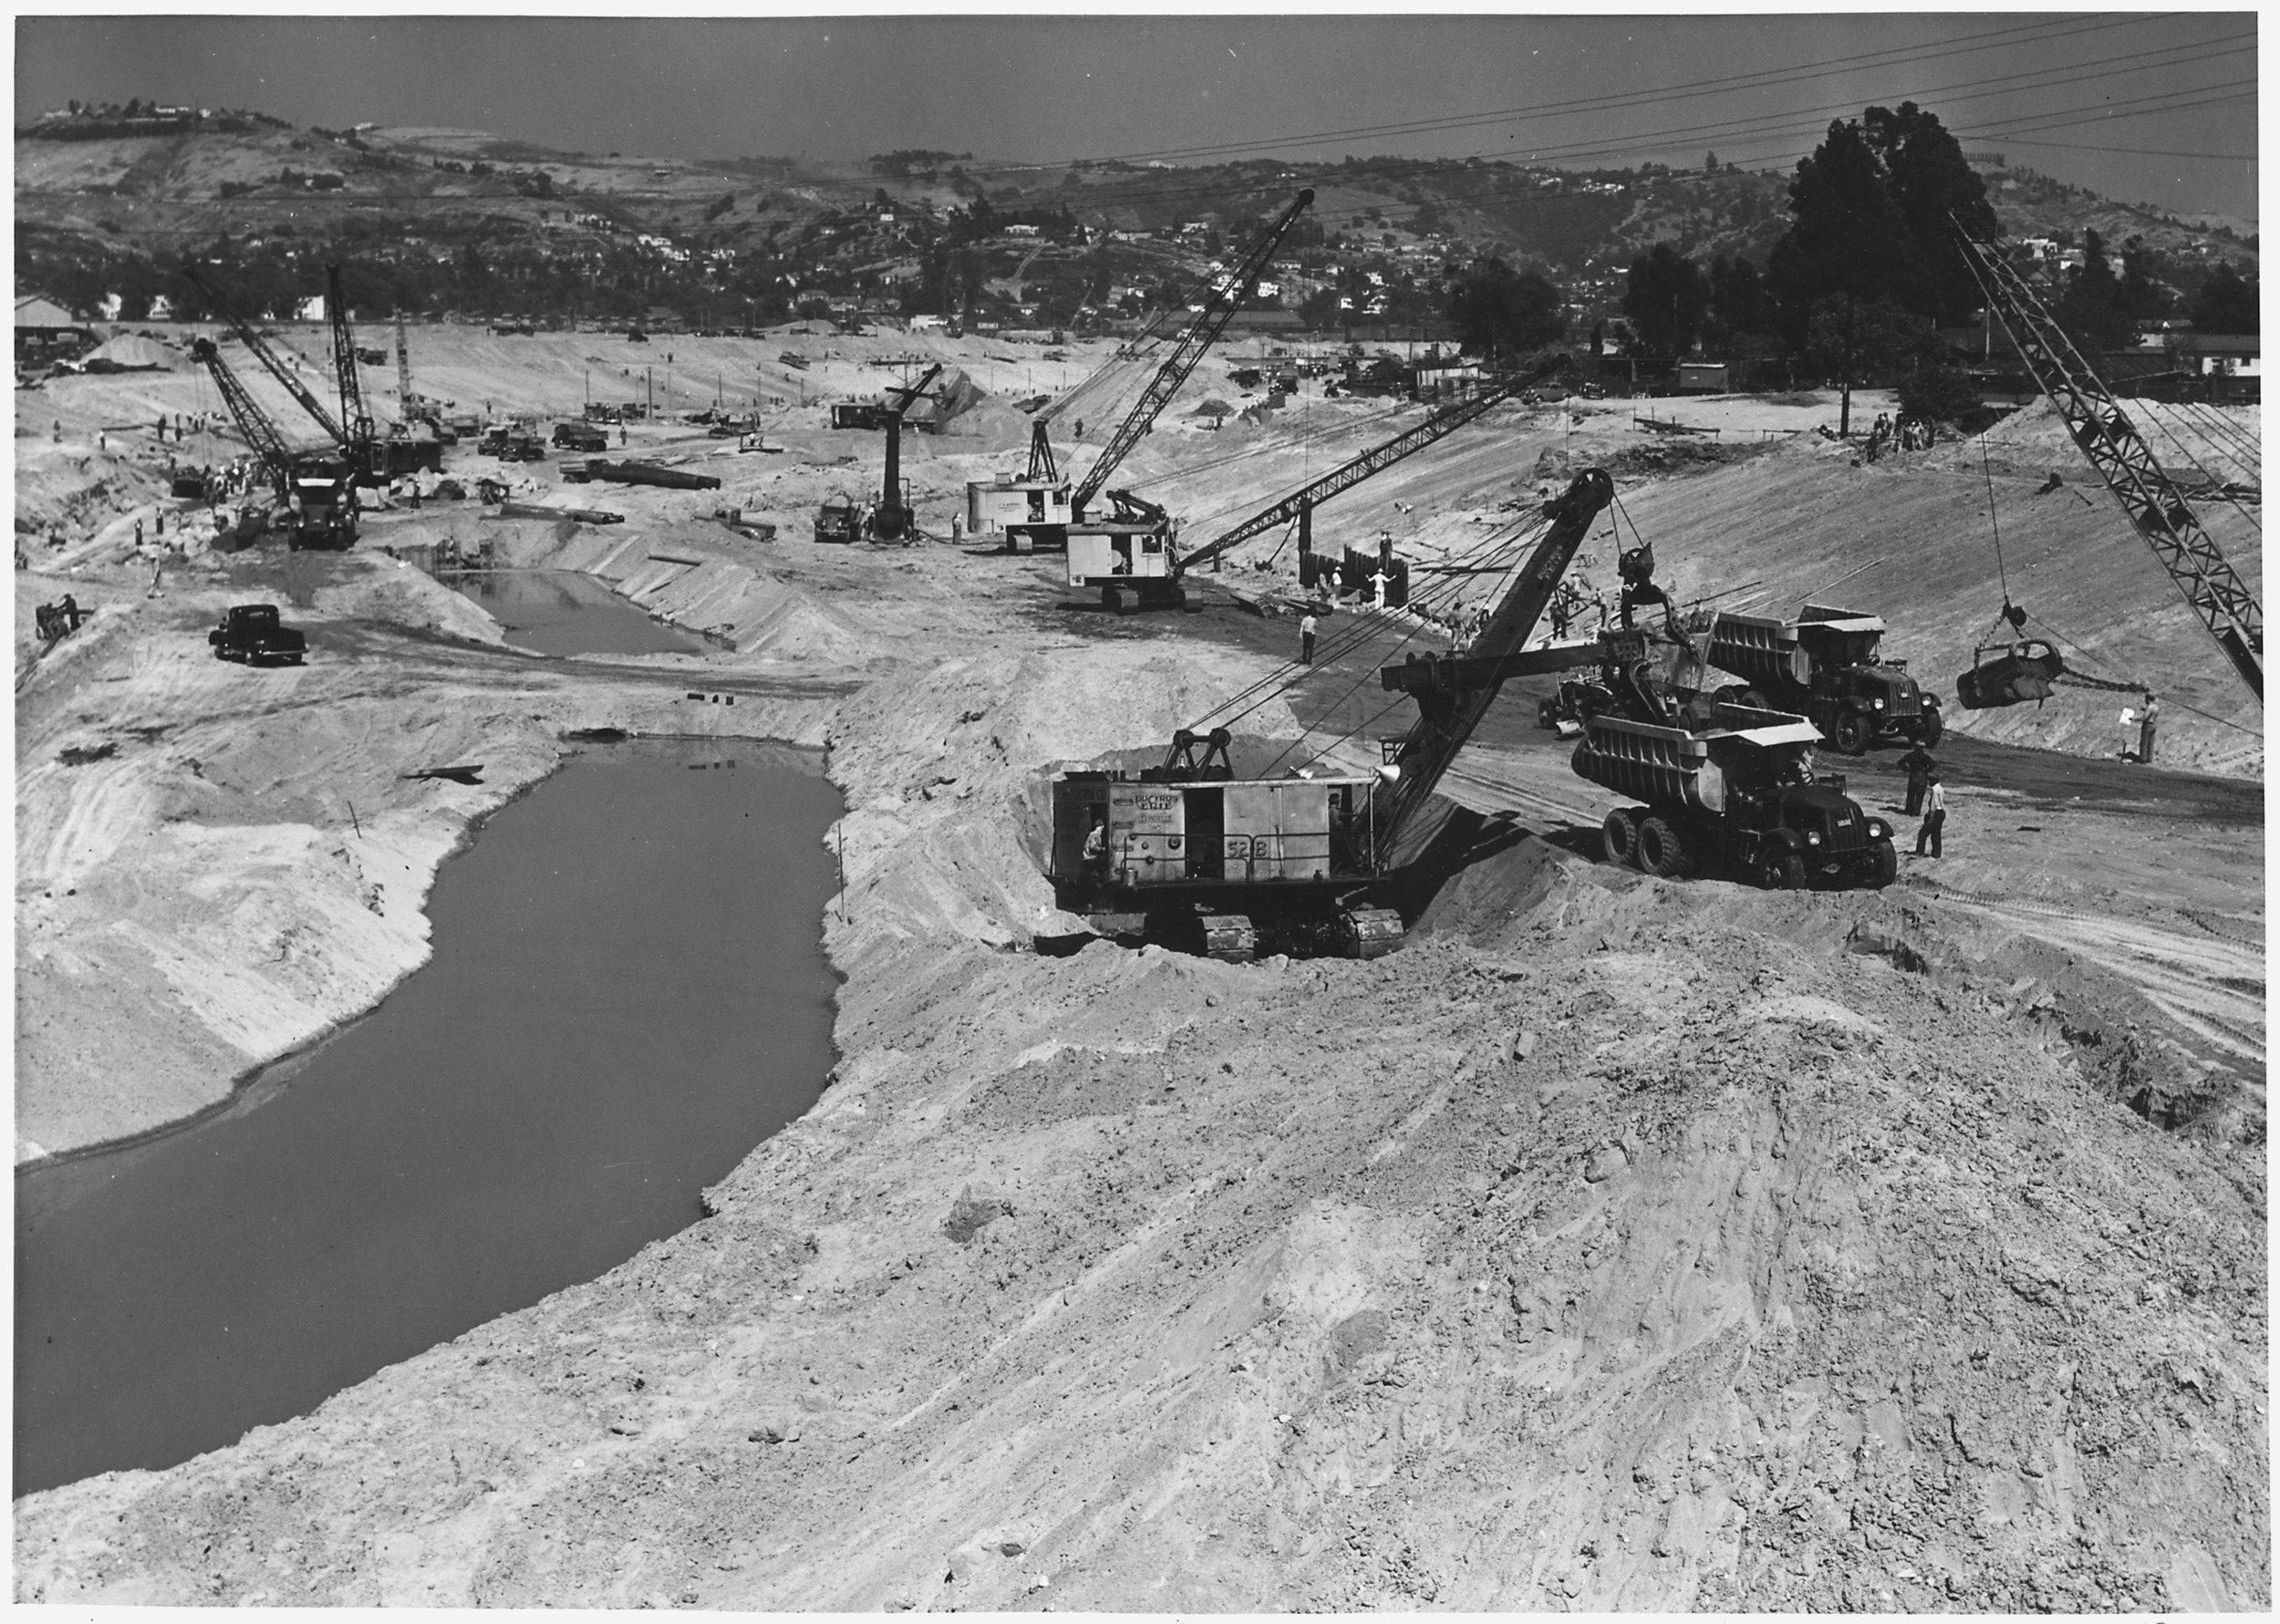 Los_Angeles_District_-_Los_Angeles_River_Subproject_No._129_-_E.R.A._and_Regular_Funds_-_Hired_Labor_-_Taken_June_13..._-_NARA_-_295359 copy.jpg